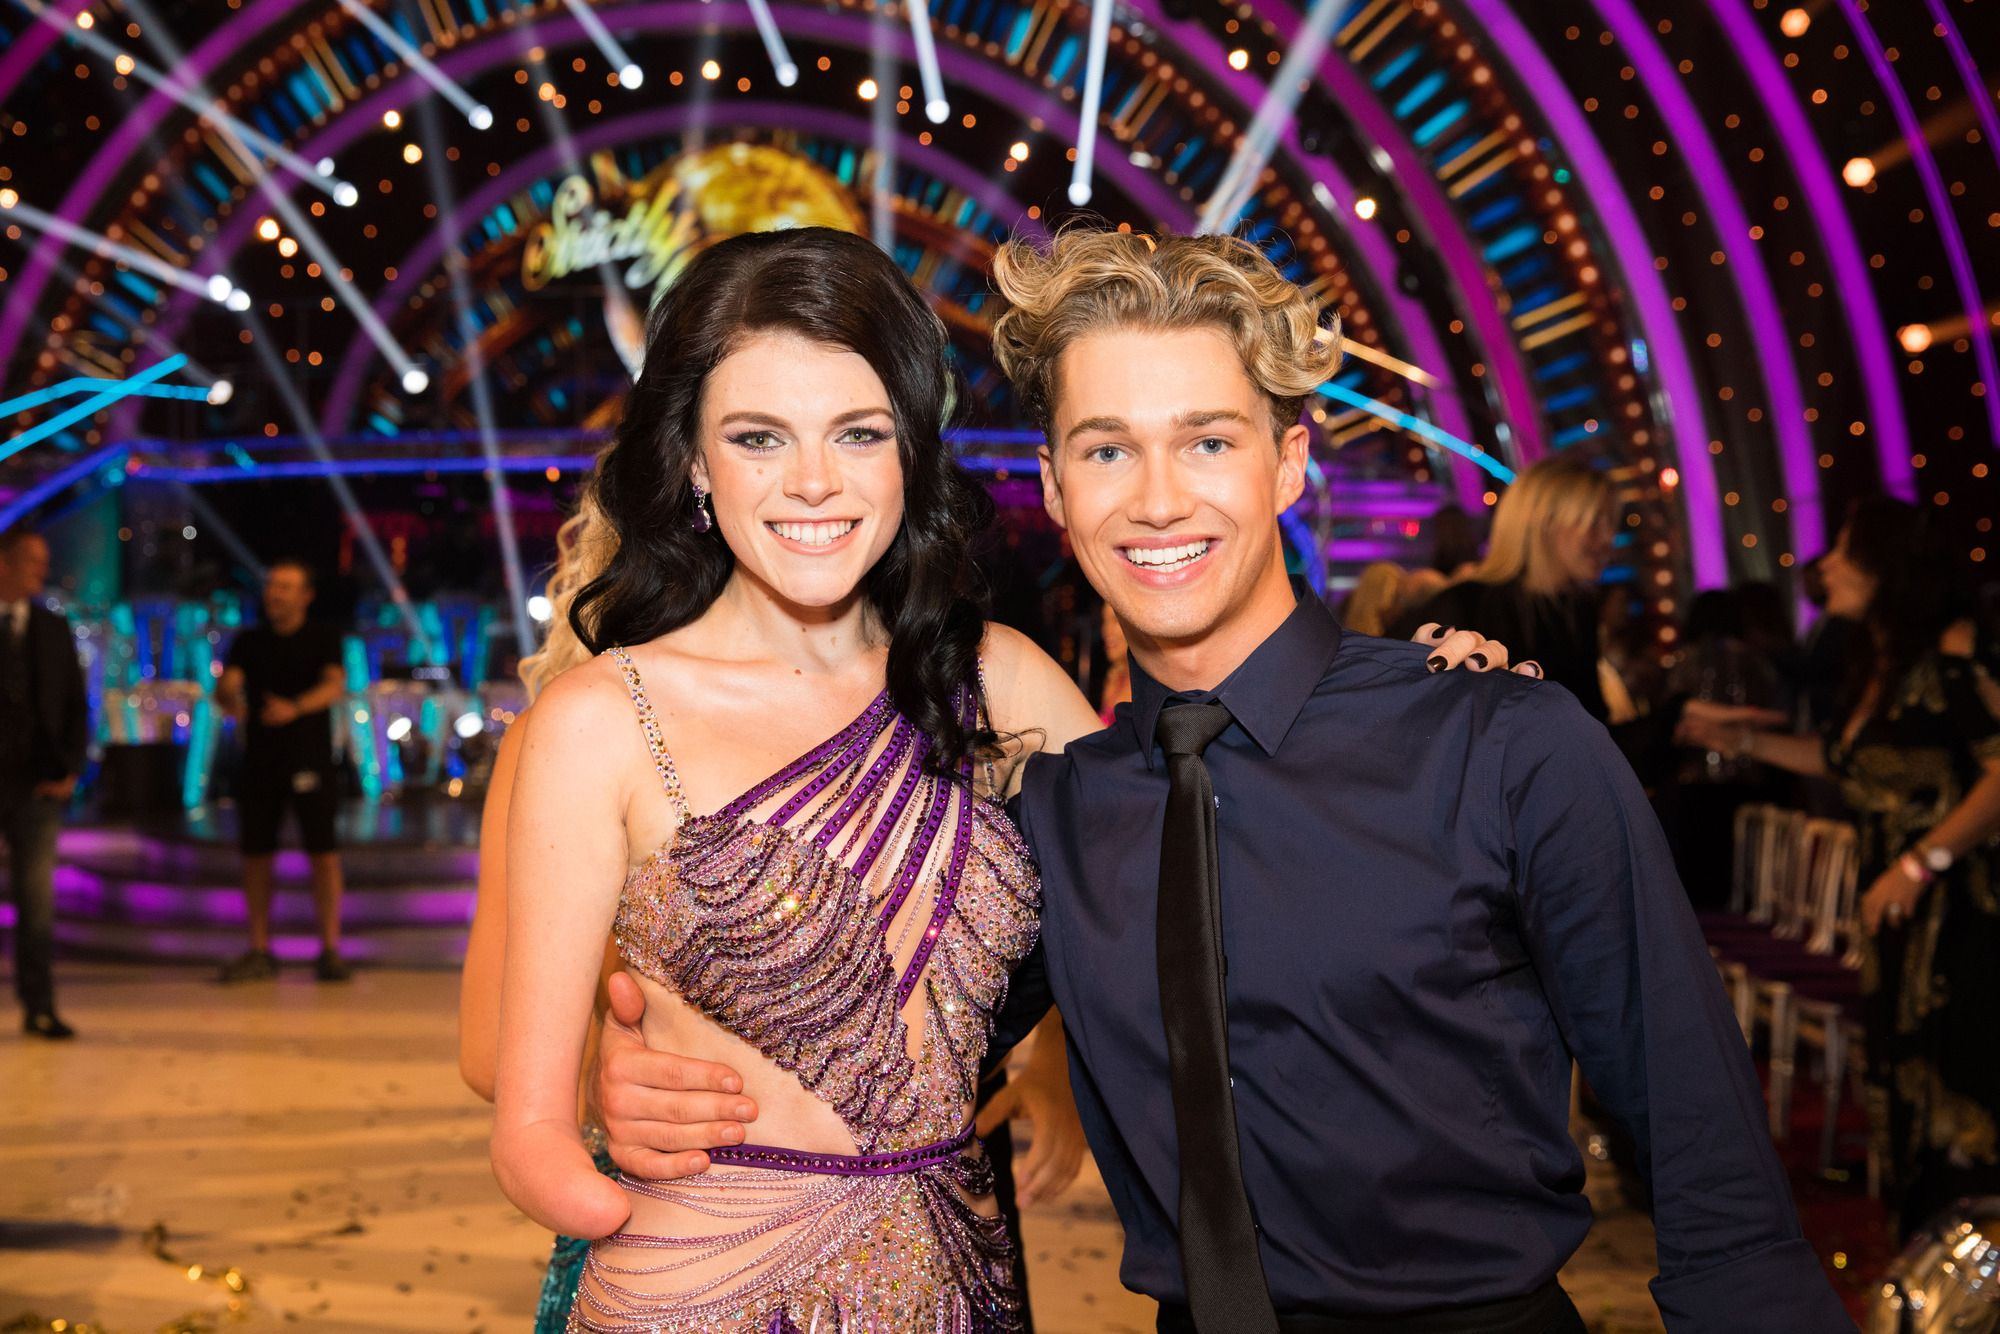 Exclusive: Strictly Come Dancing's AJ Pritchard has a changed outlook after dancing with Lauren Steadman